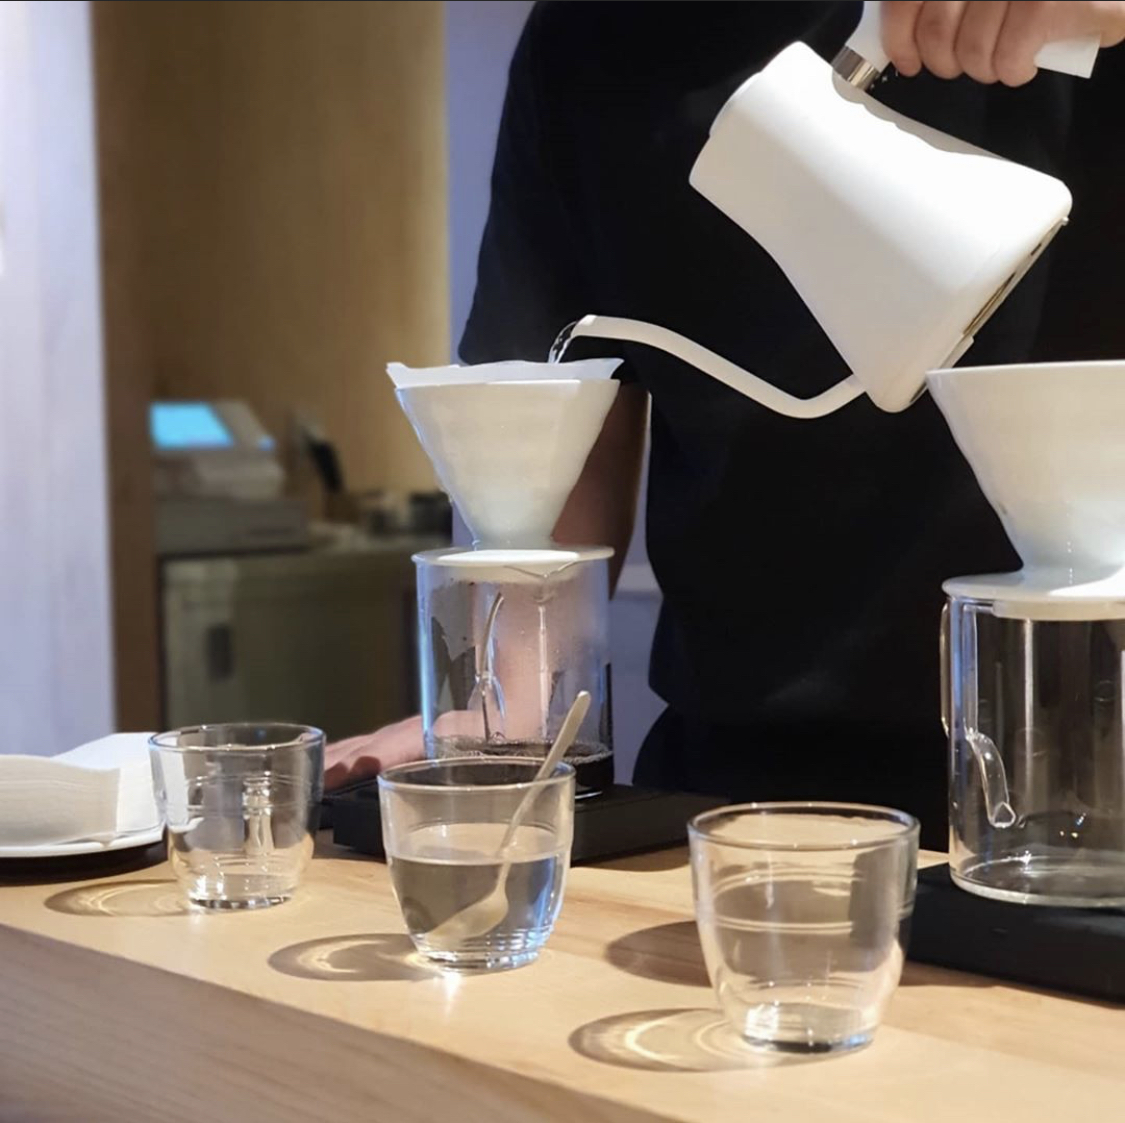 At Danil Seoul, all pour-over coffee is agitated during the extraction process. (Danil Seoul)